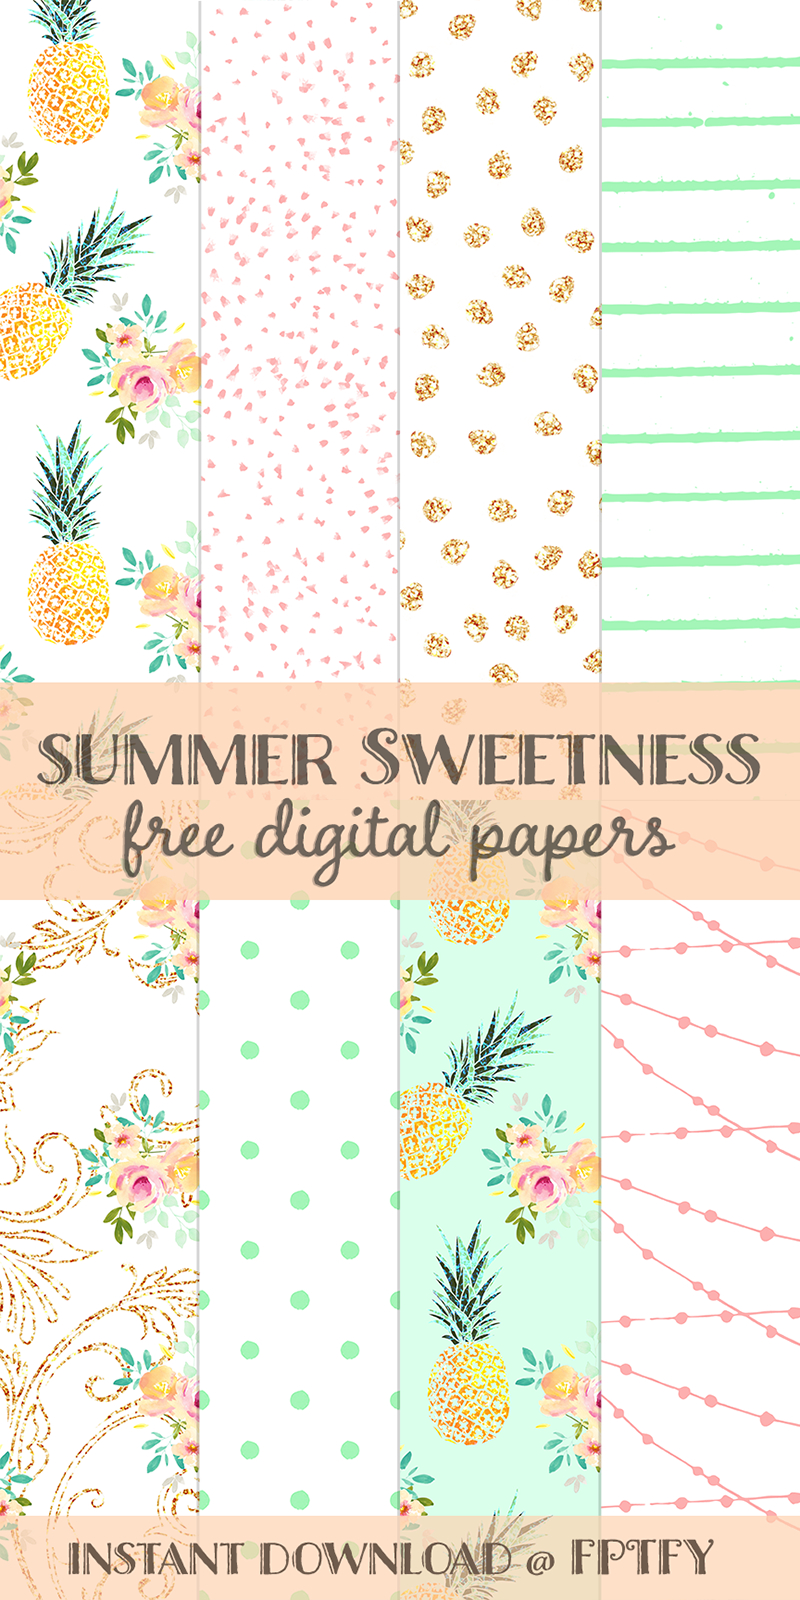 Free Summer Sweetness Digital Paper | Best Free Digital Goods - Free Online Digital Scrapbooking Printable